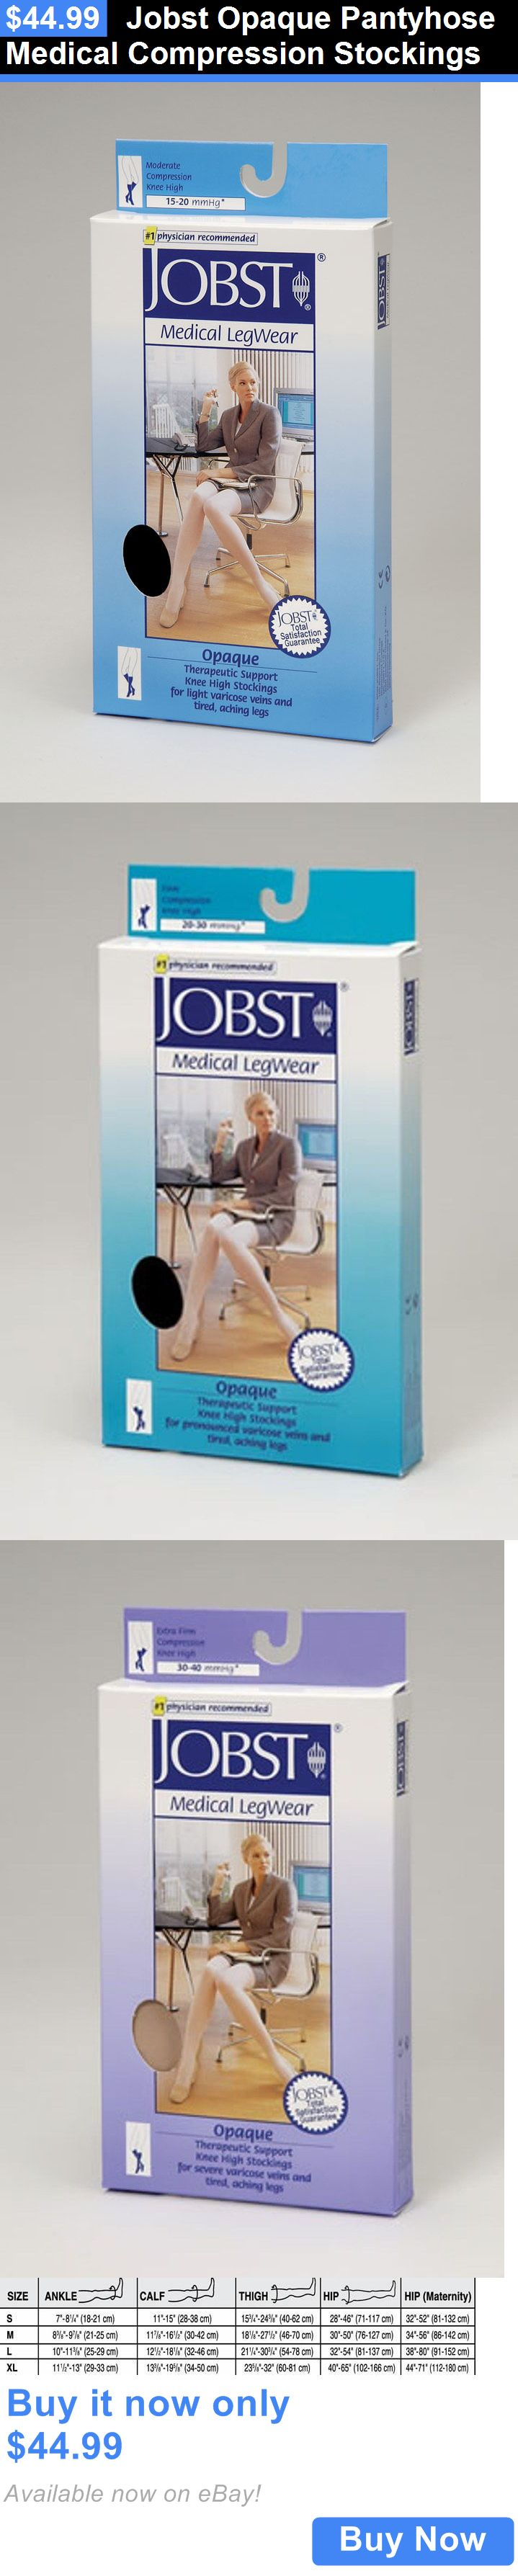 Compression Garments: Jobst Opaque Pantyhose Medical Compression Stockings BUY IT NOW ONLY: $44.99